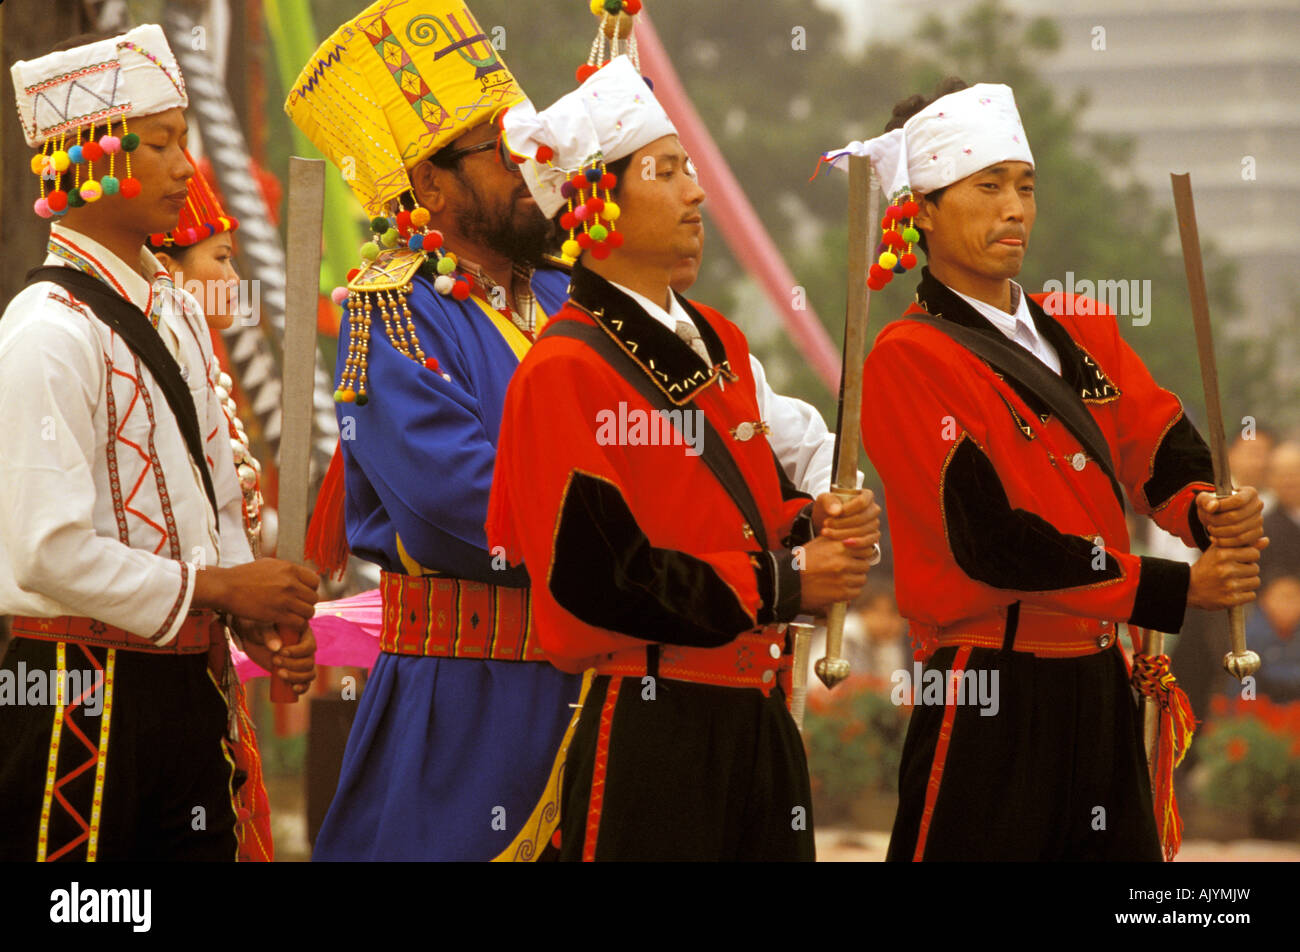 Chinese Ethnic Culture Park Marching band Jingpo ethnic costume  sc 1 st  Alamy & Asia China Beijing. Chinese Ethnic Culture Park Marching band ...